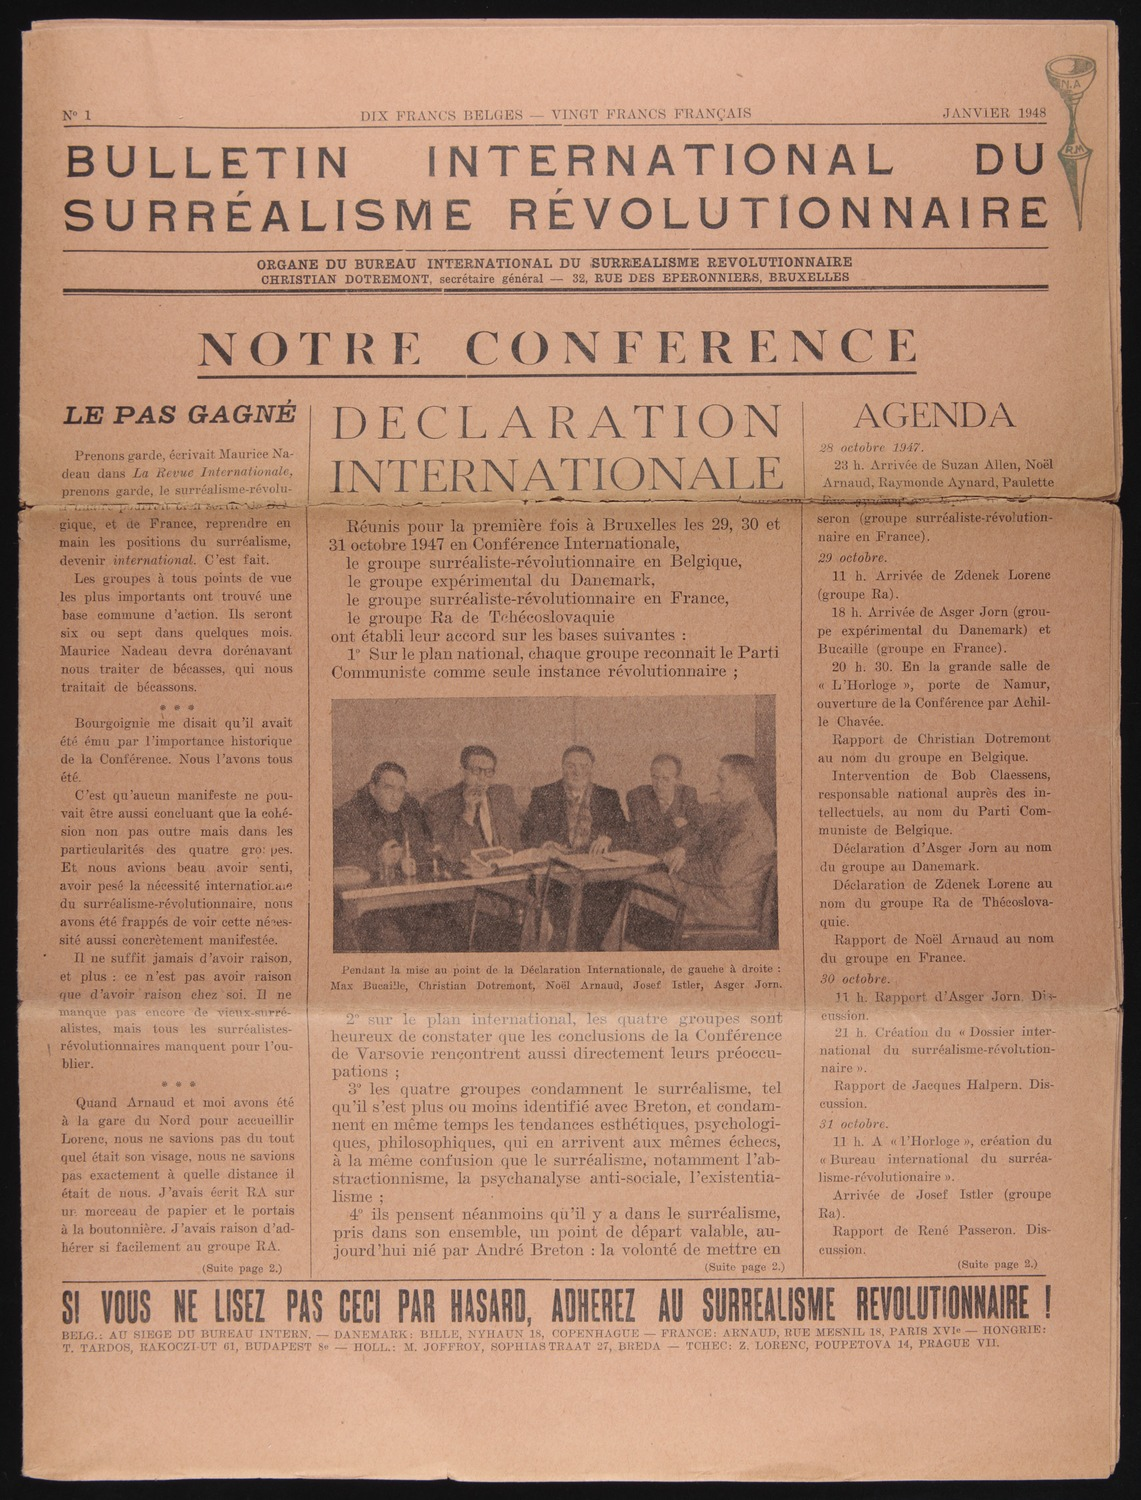 Bulletin surrealisme revolutionnaire